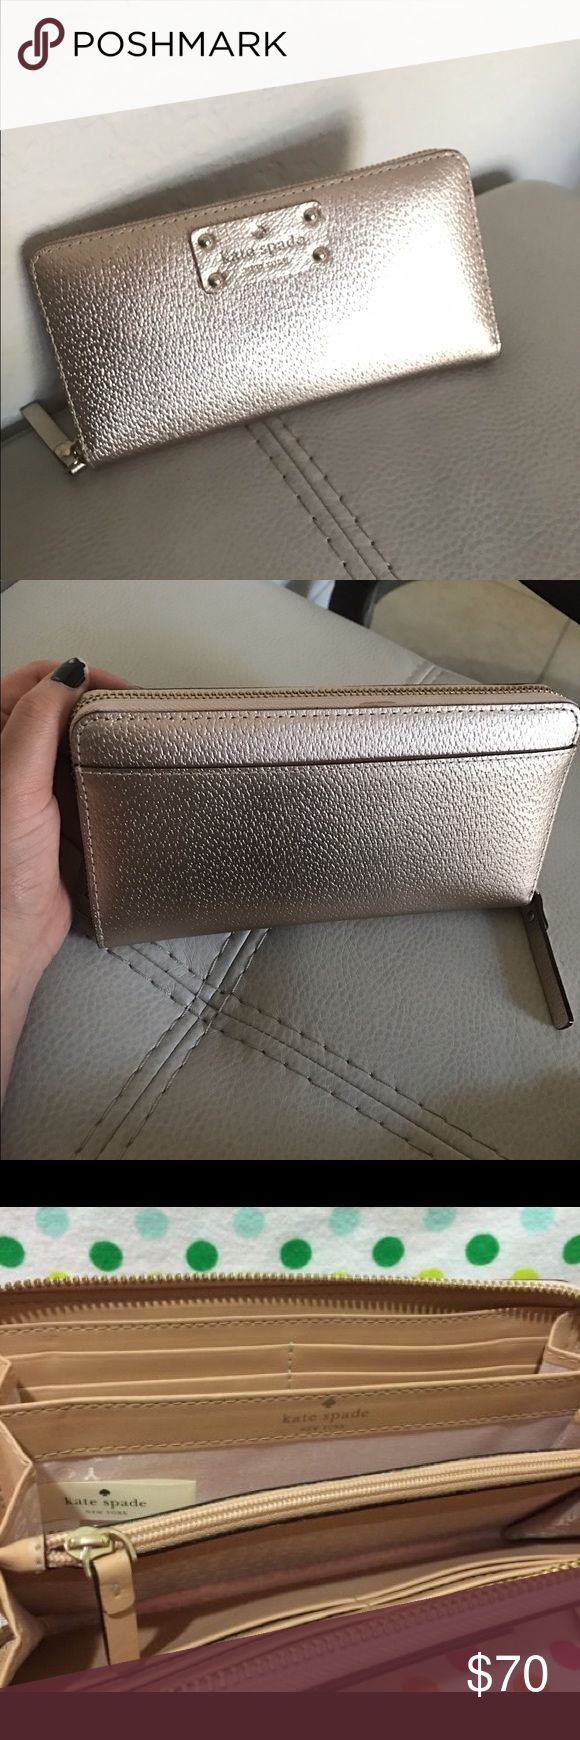 Kate spade wallet wellesley neda rose gold Excellent condition. So cute rose gold color. kate spade Bags Wallets